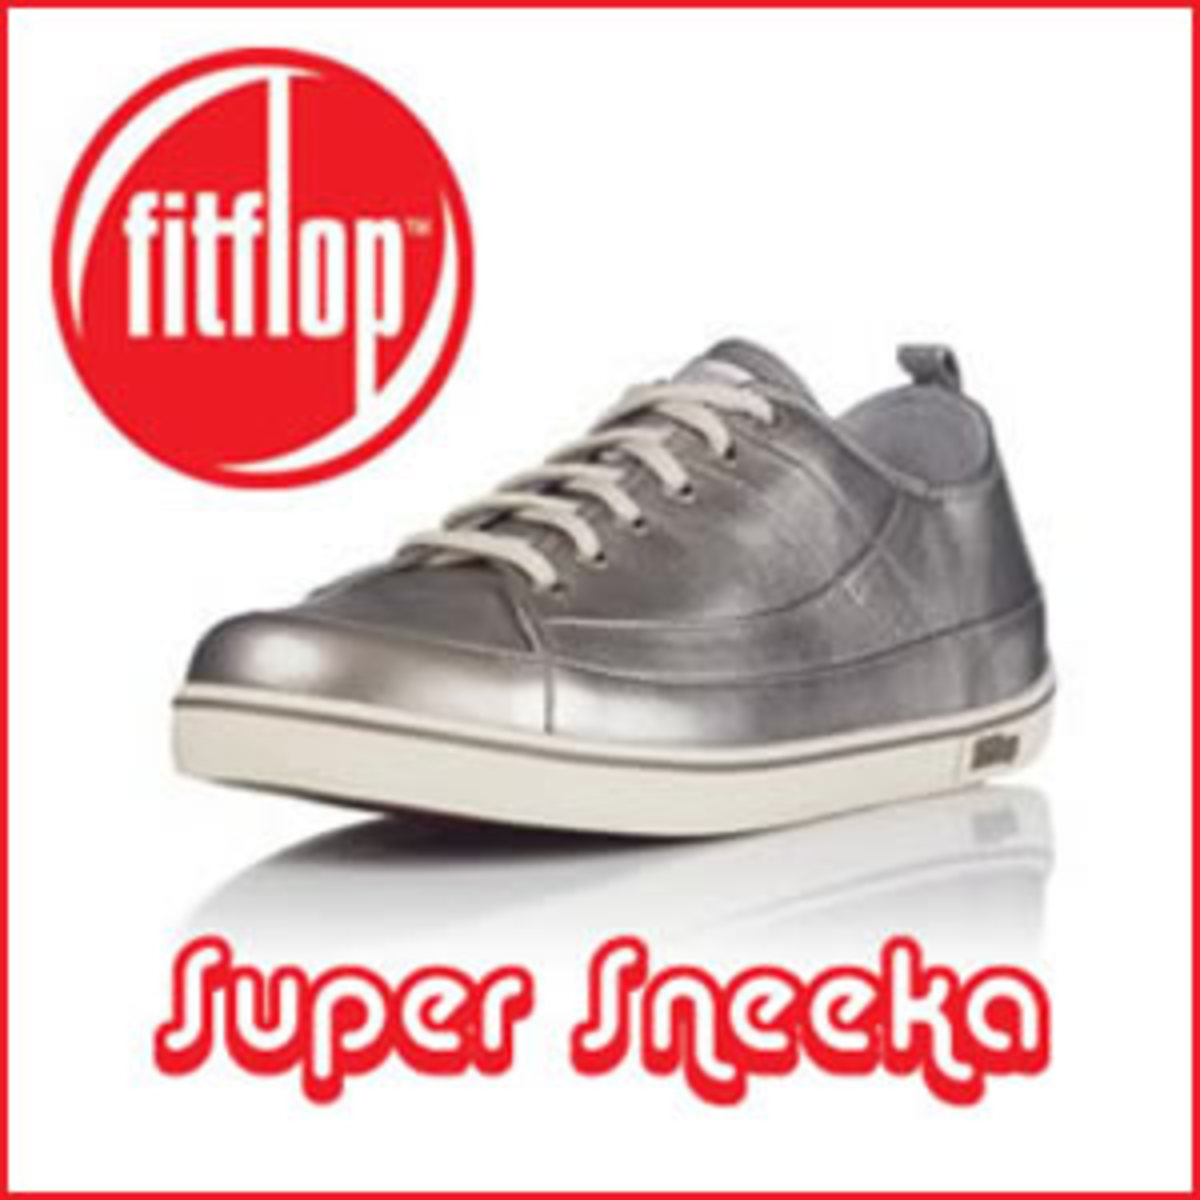 The FitFlop Super Sneeka